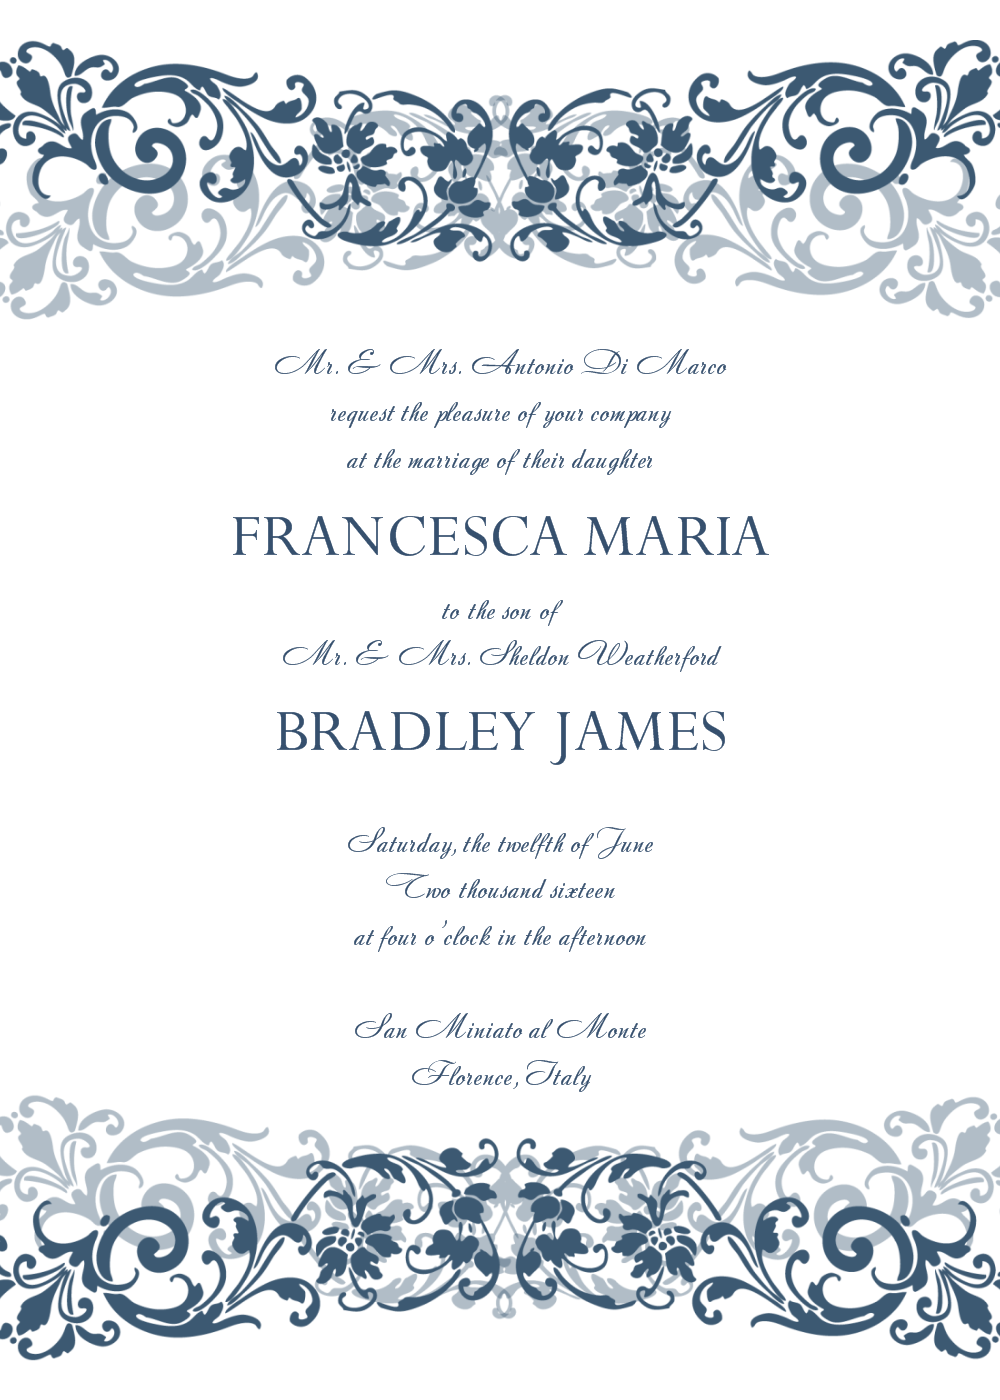 30 Free Wedding Invitations Templates – Invitation Word Template